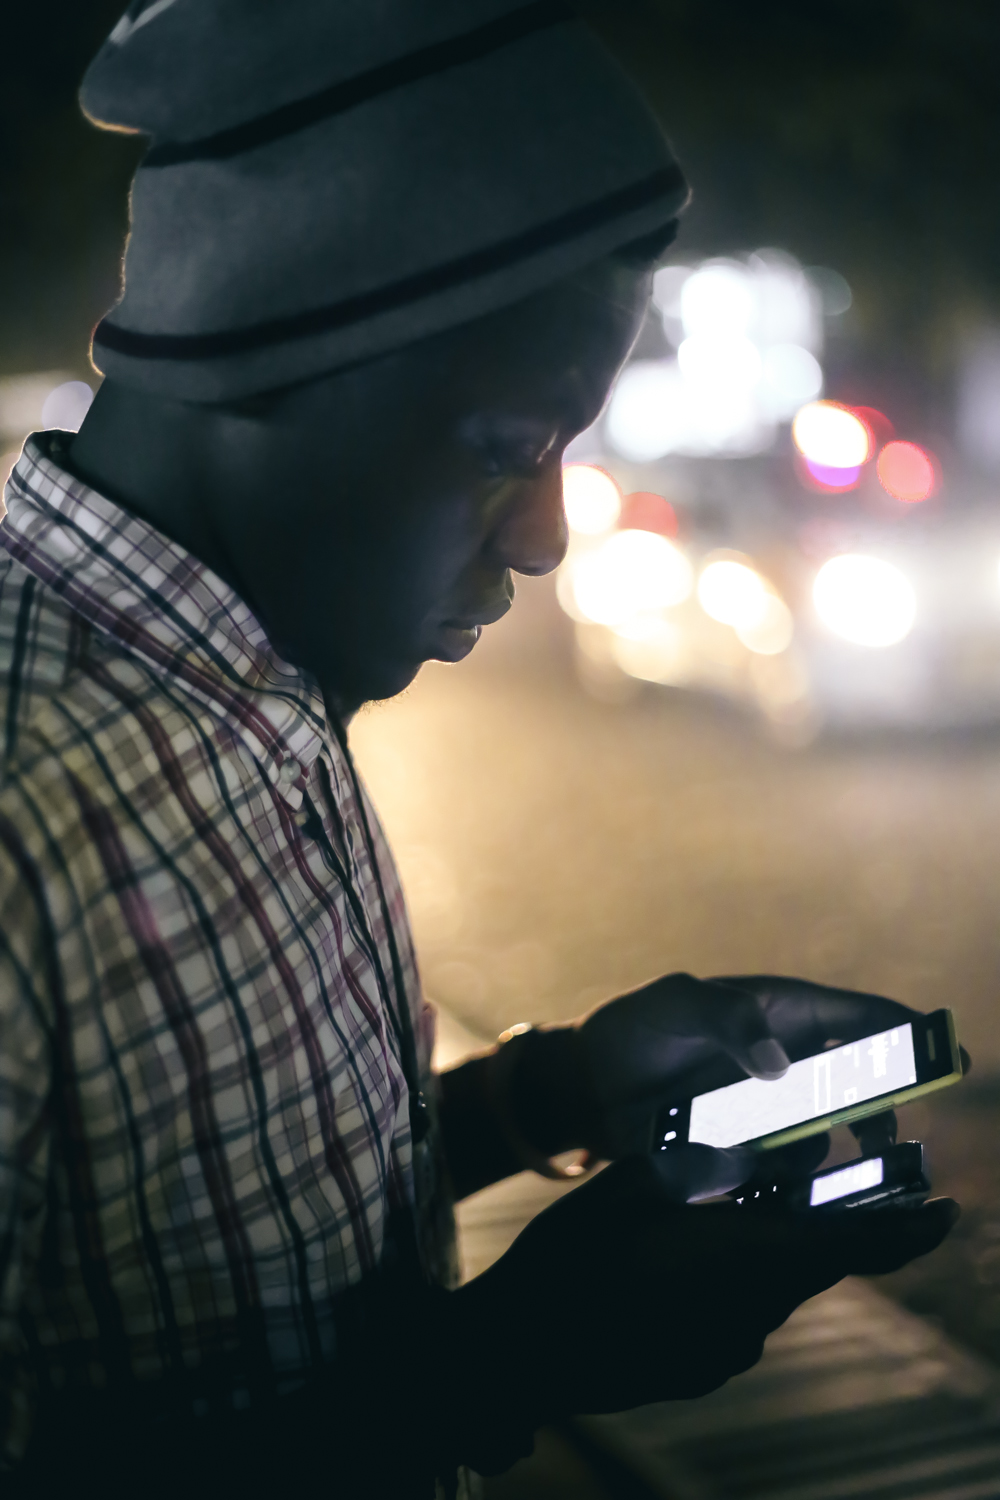 Because of their lives with dumsor, millennials in Ghana often have two phones: one smartphone to use apps like instagram and snapchat, and one old mobile phone with a longer lasting battery in case the battery of their smartphone dies during a power outage.